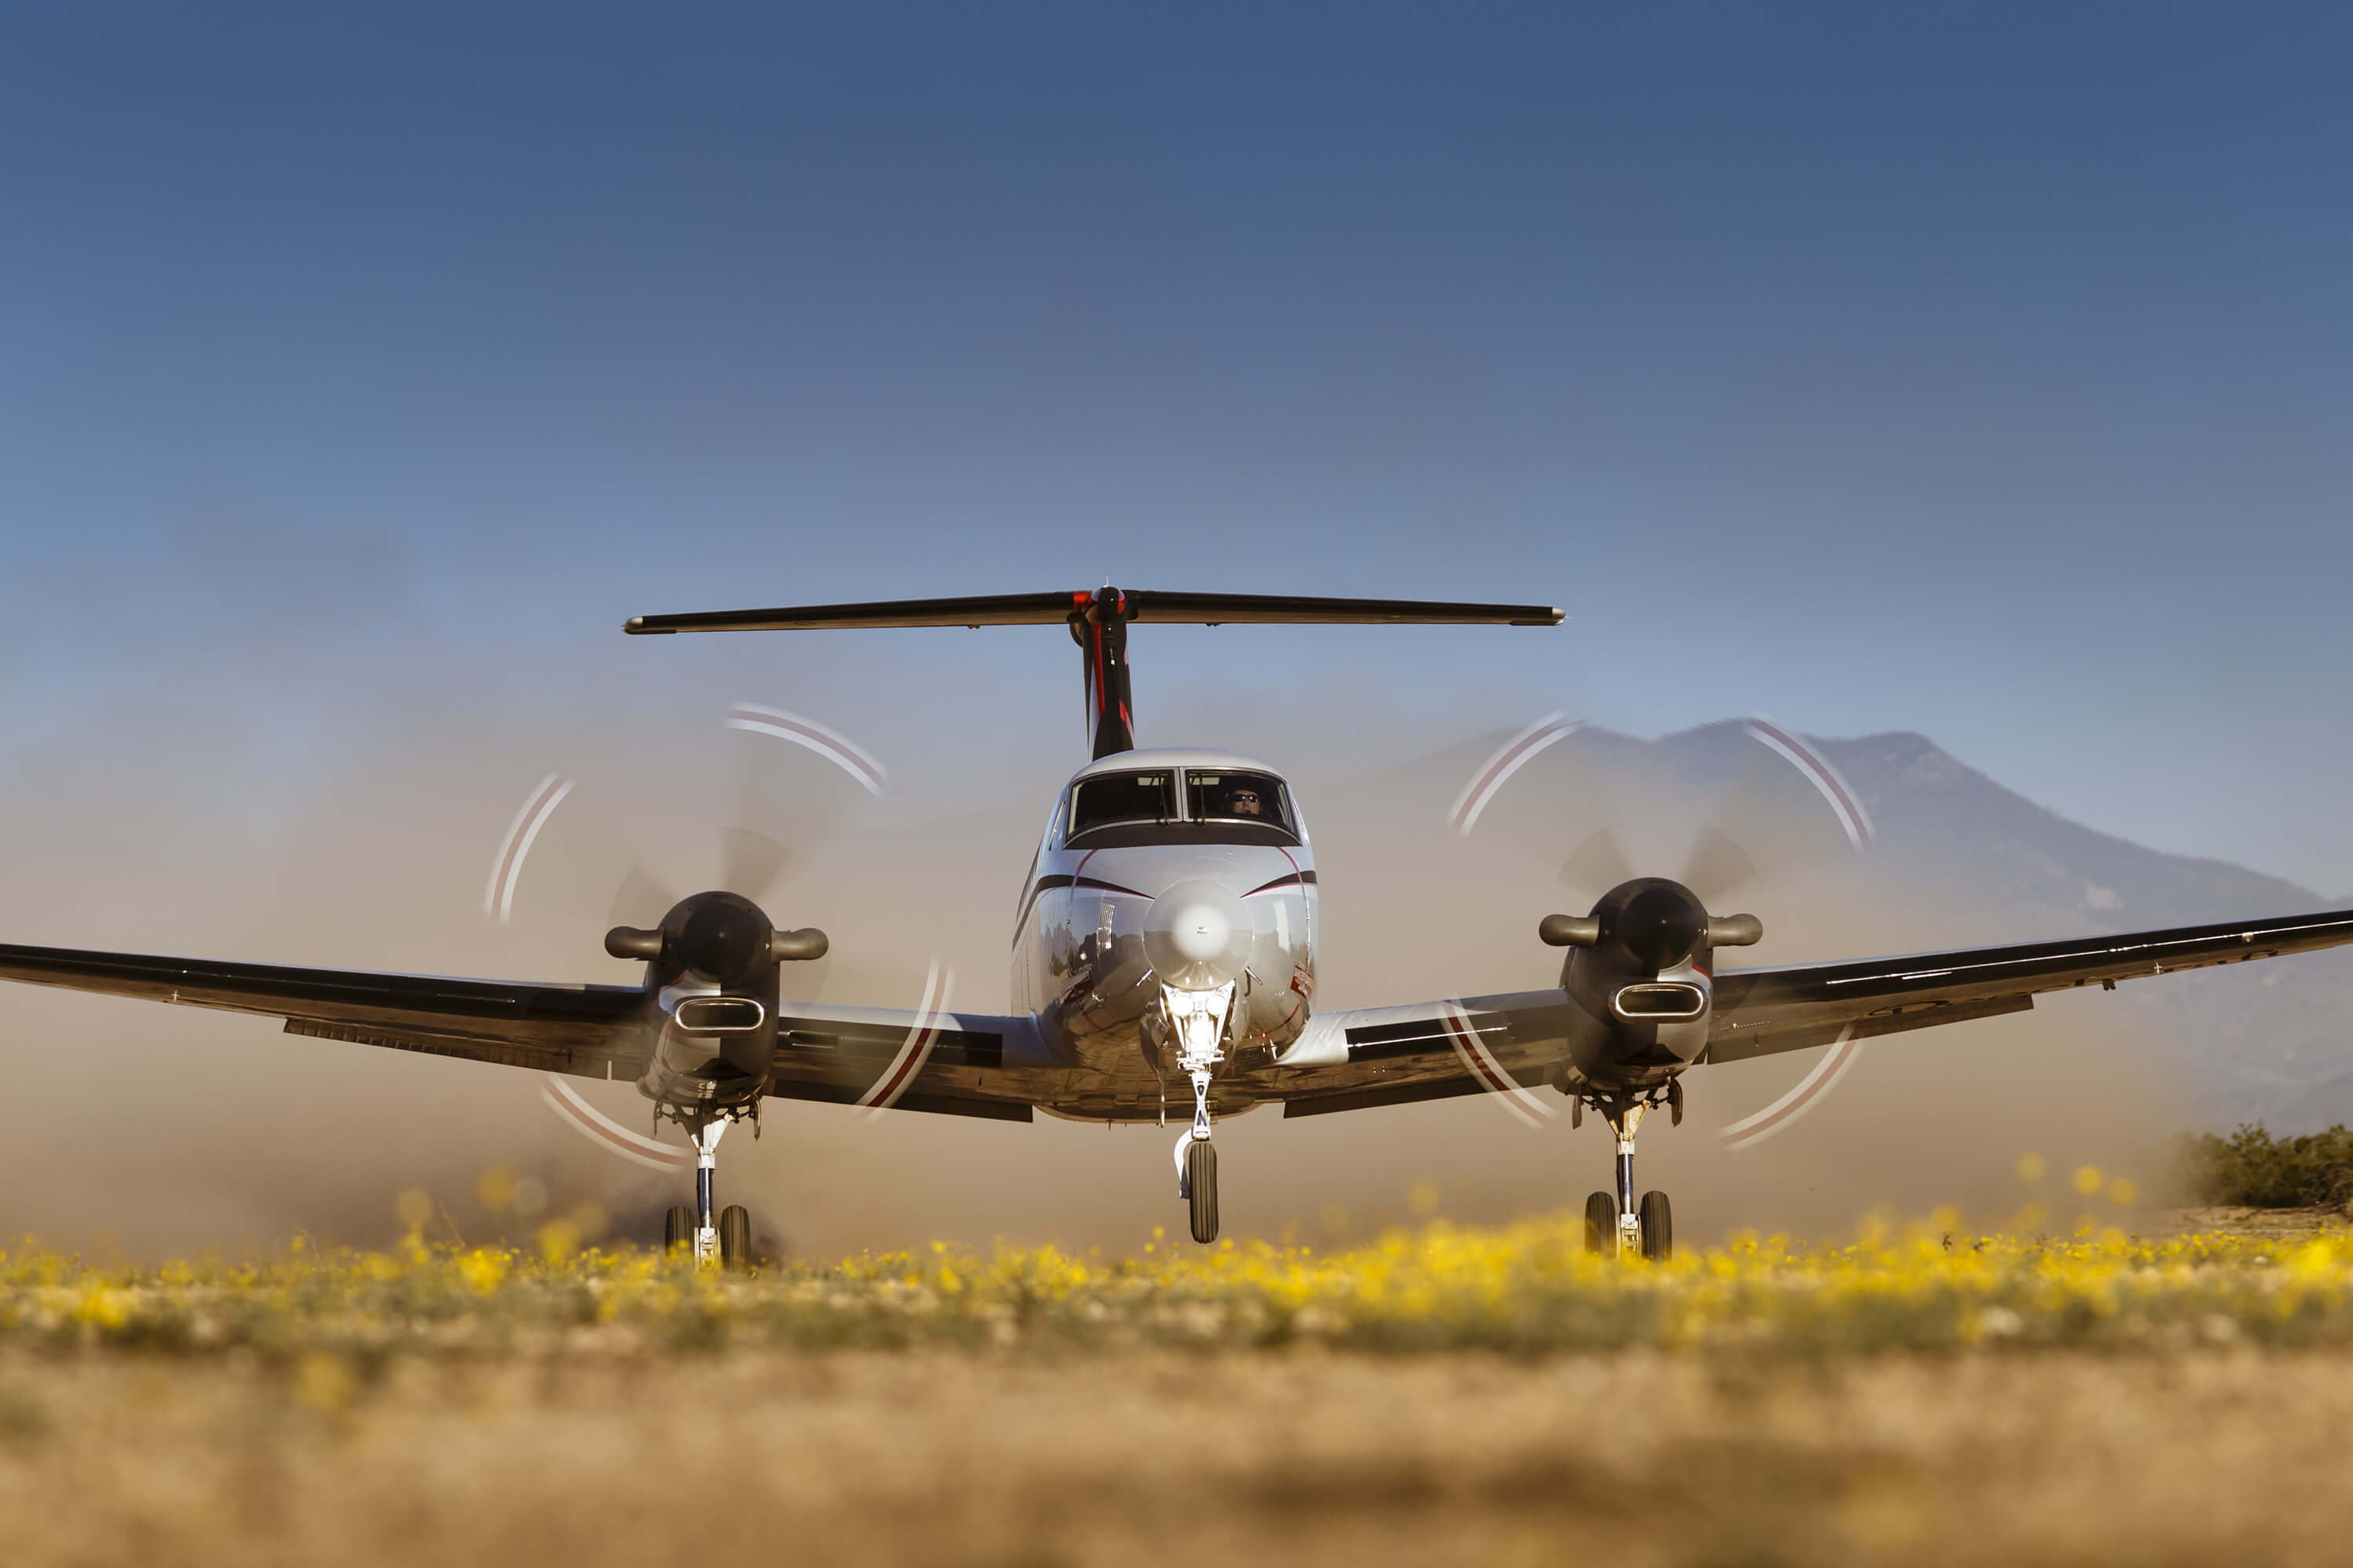 Beechcraft introduces special mission enhancements for the King Air 350 platform